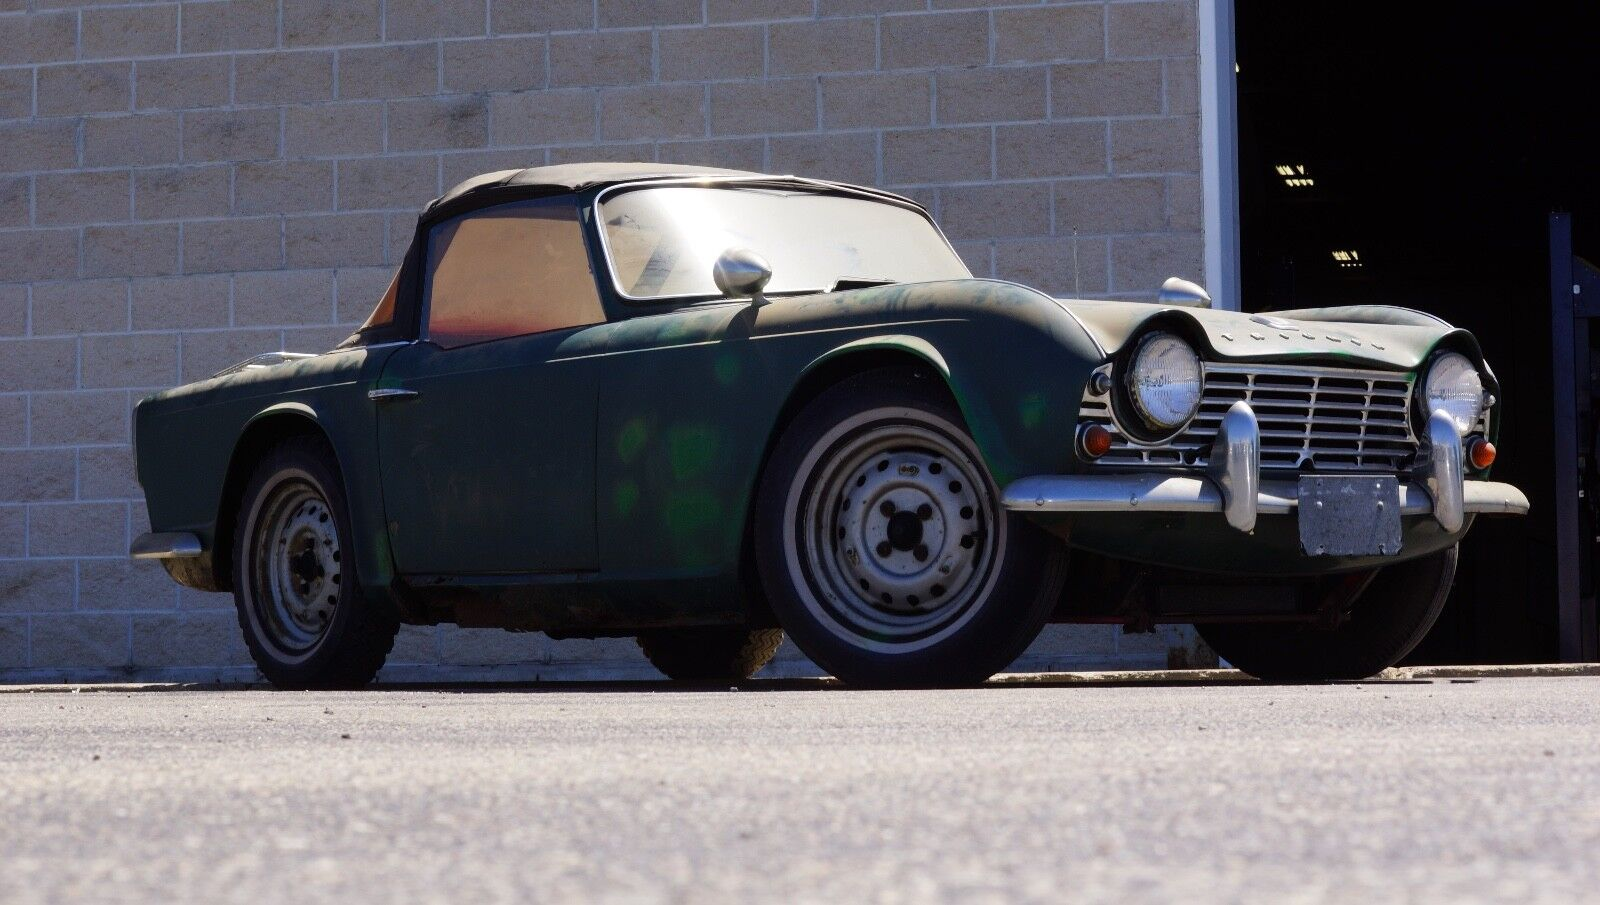 1962 Triumph TR4 : NO RESERVE - One Owner Fully Documented TR4 Roadster Project